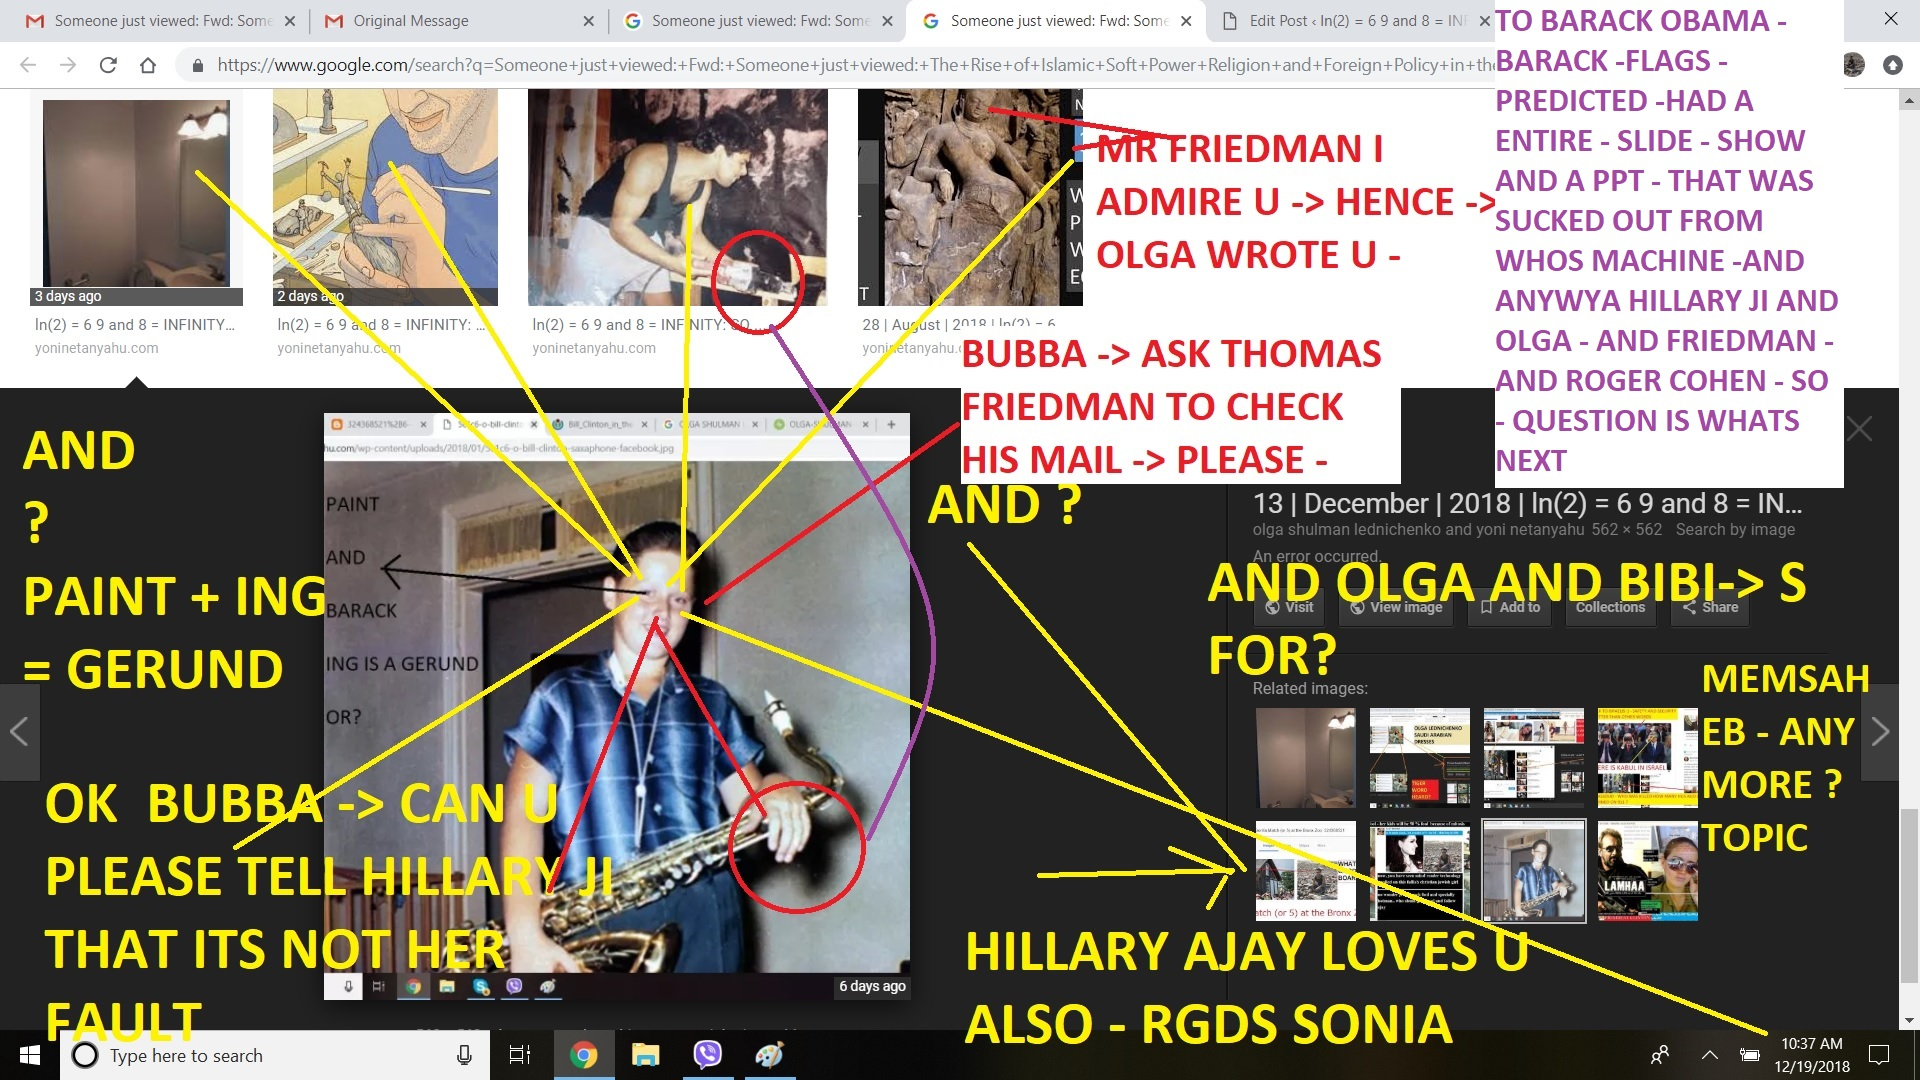 TO BARACK OBAMA - BARACK -FLAGS - PREDICTED -HAD A ENTIRE - SLIDE - SHOW AND A PPT - THAT WAS SUCKED OUT FROM WHOS MACHINE -AND ANYWYA HILLARY JI AND OLGA - AND FRIEDMAN - AND ROGER COHE